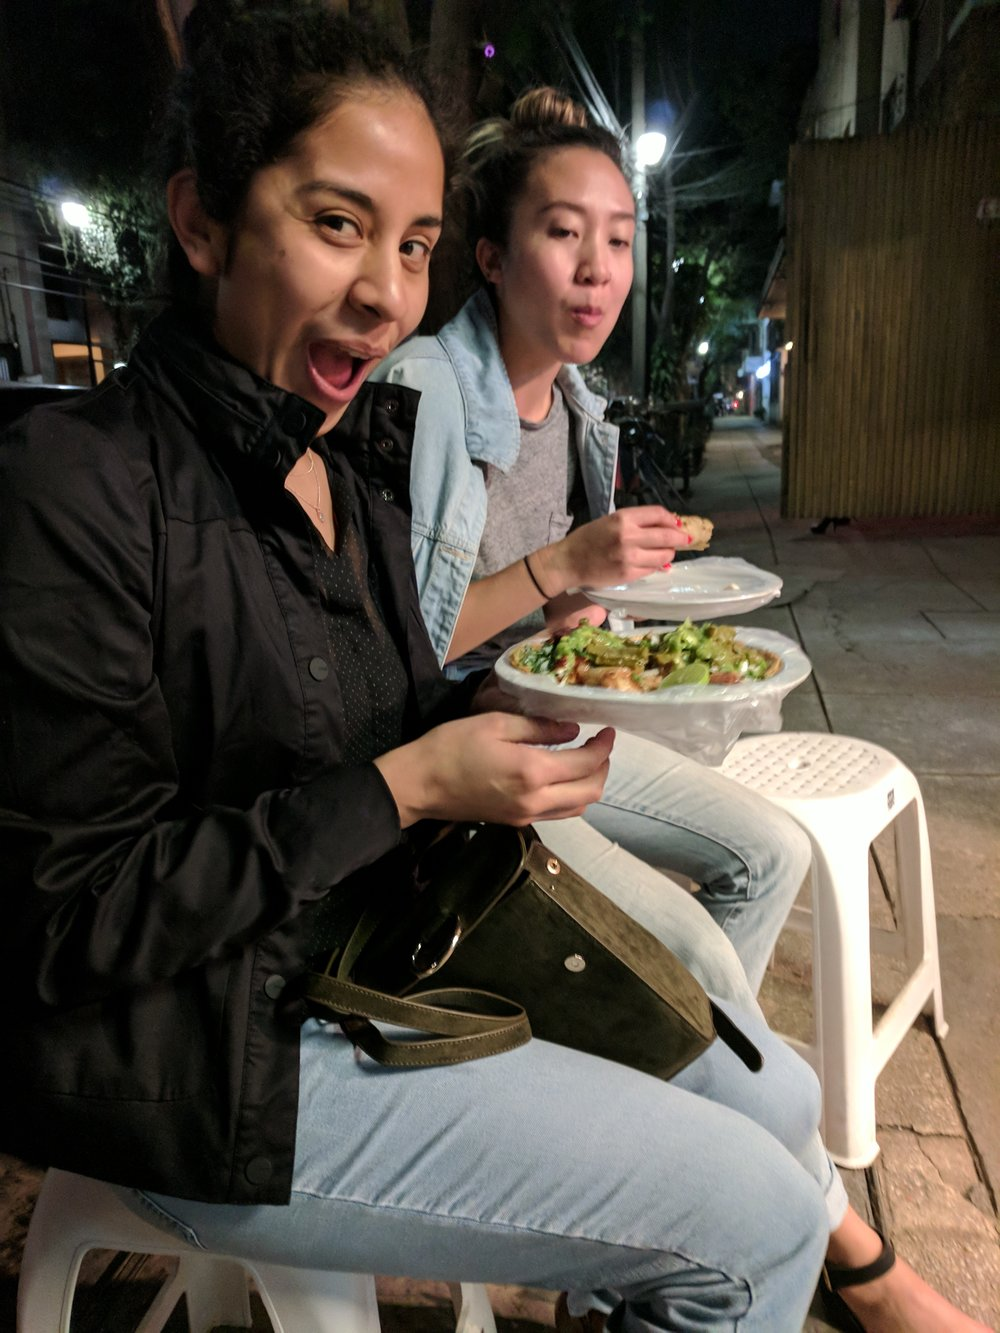 Gals with their food